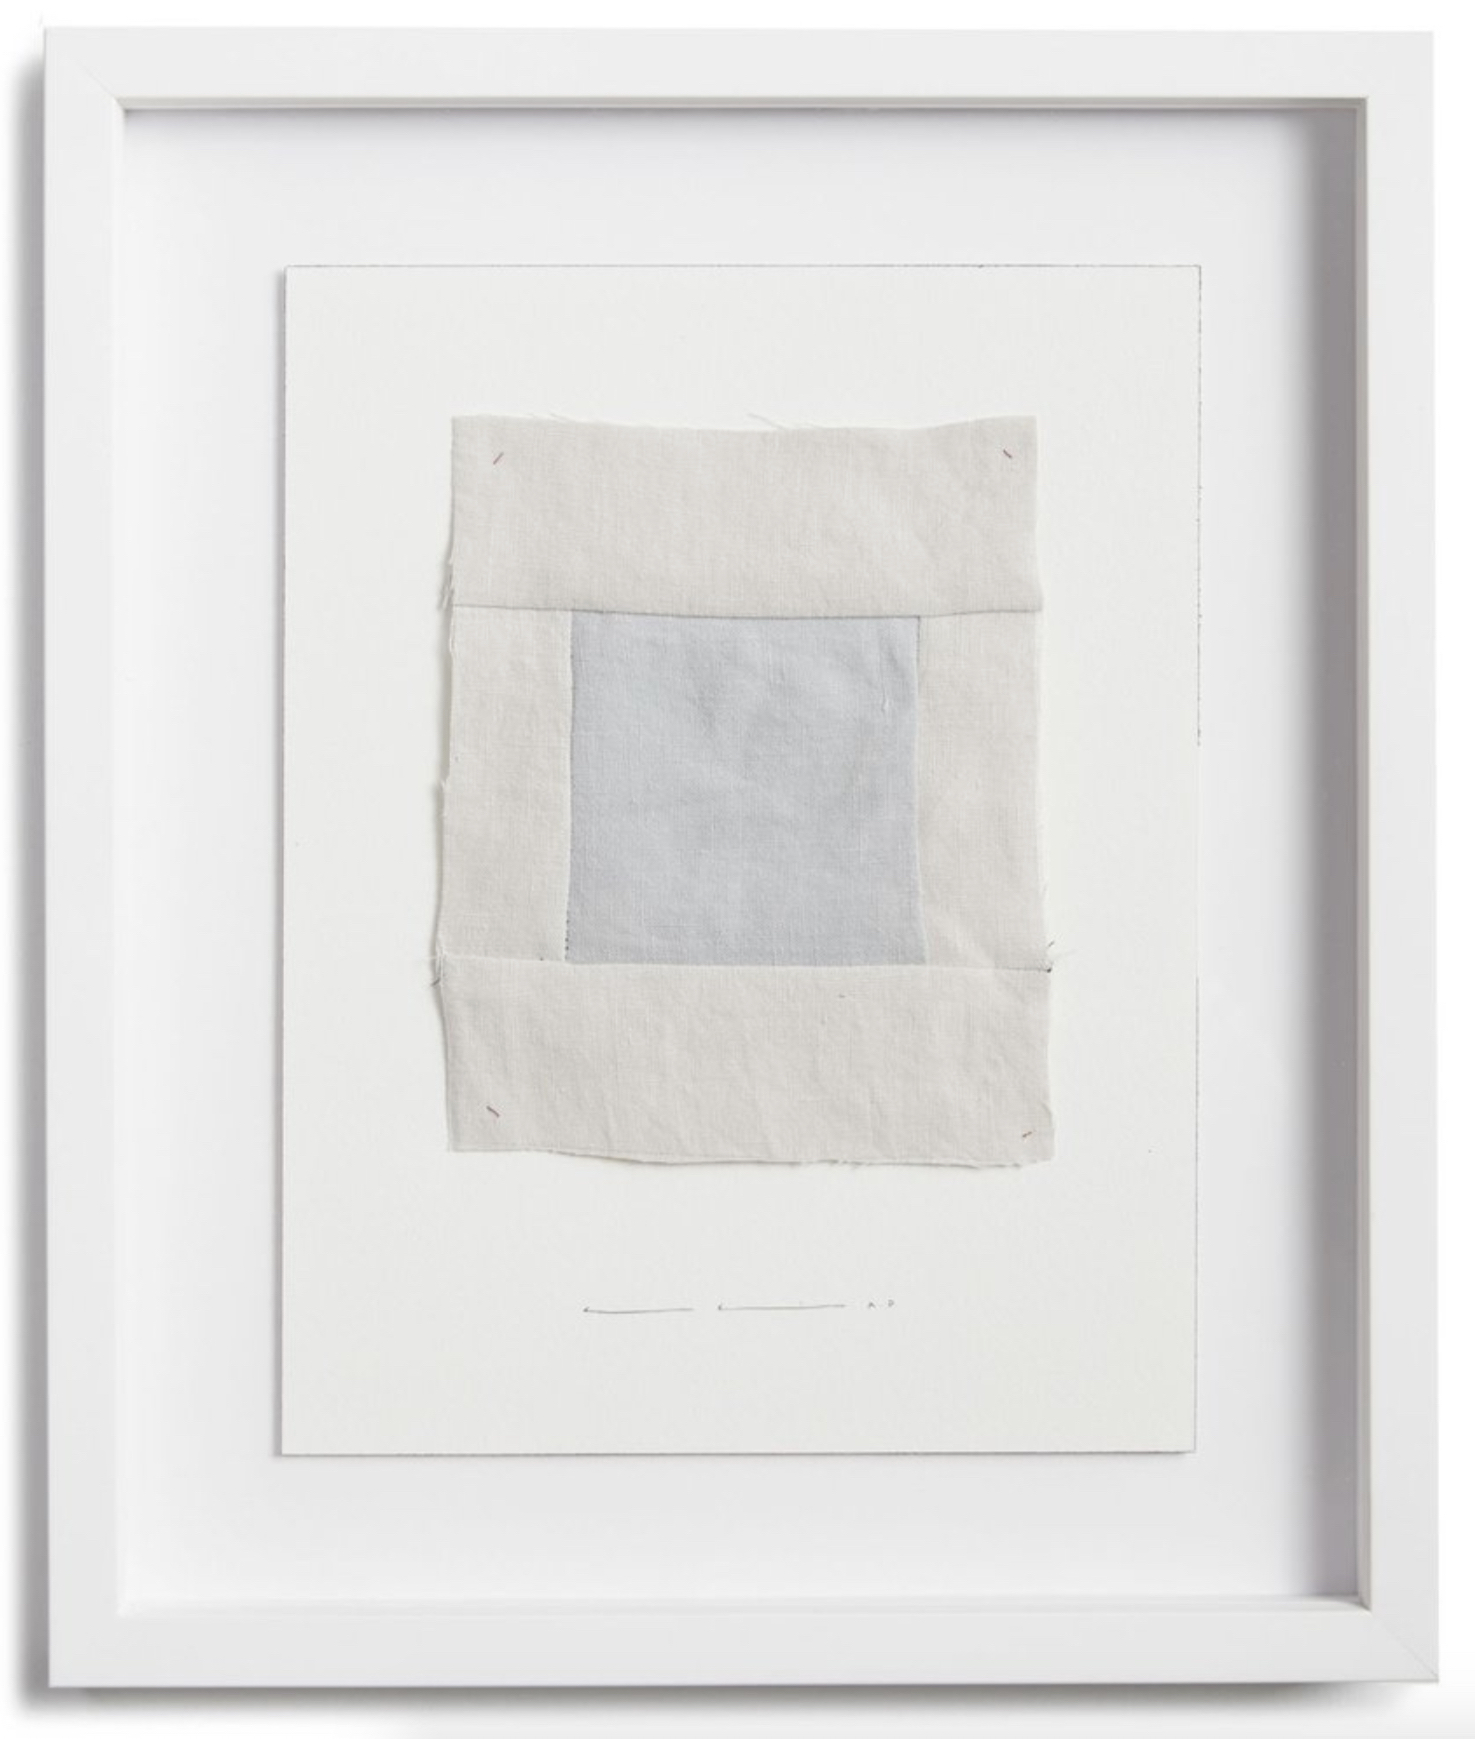 "spending the night in a different bed (venice, california)  quilted parachute linen, cotton thread, and graphite on cotton paper  14"" x 11"" edition of 15  10"" x 8"" edition of 40  parachute, worldwide"